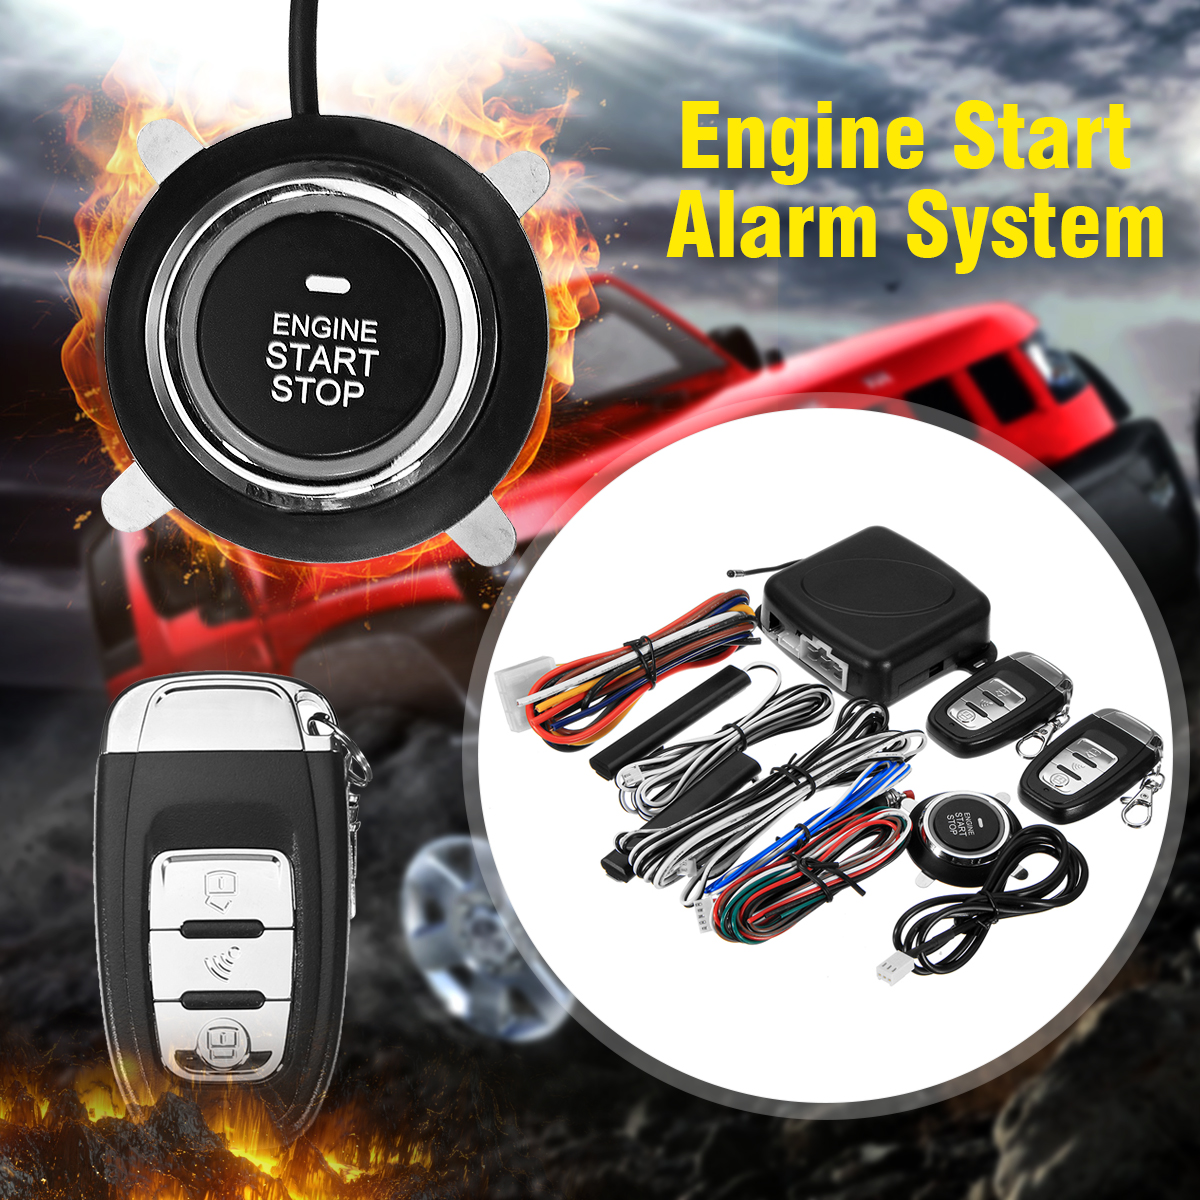 Smart Car Q6C Alarm System Push Button & Remote Start Engine Auto Lock & Unlock